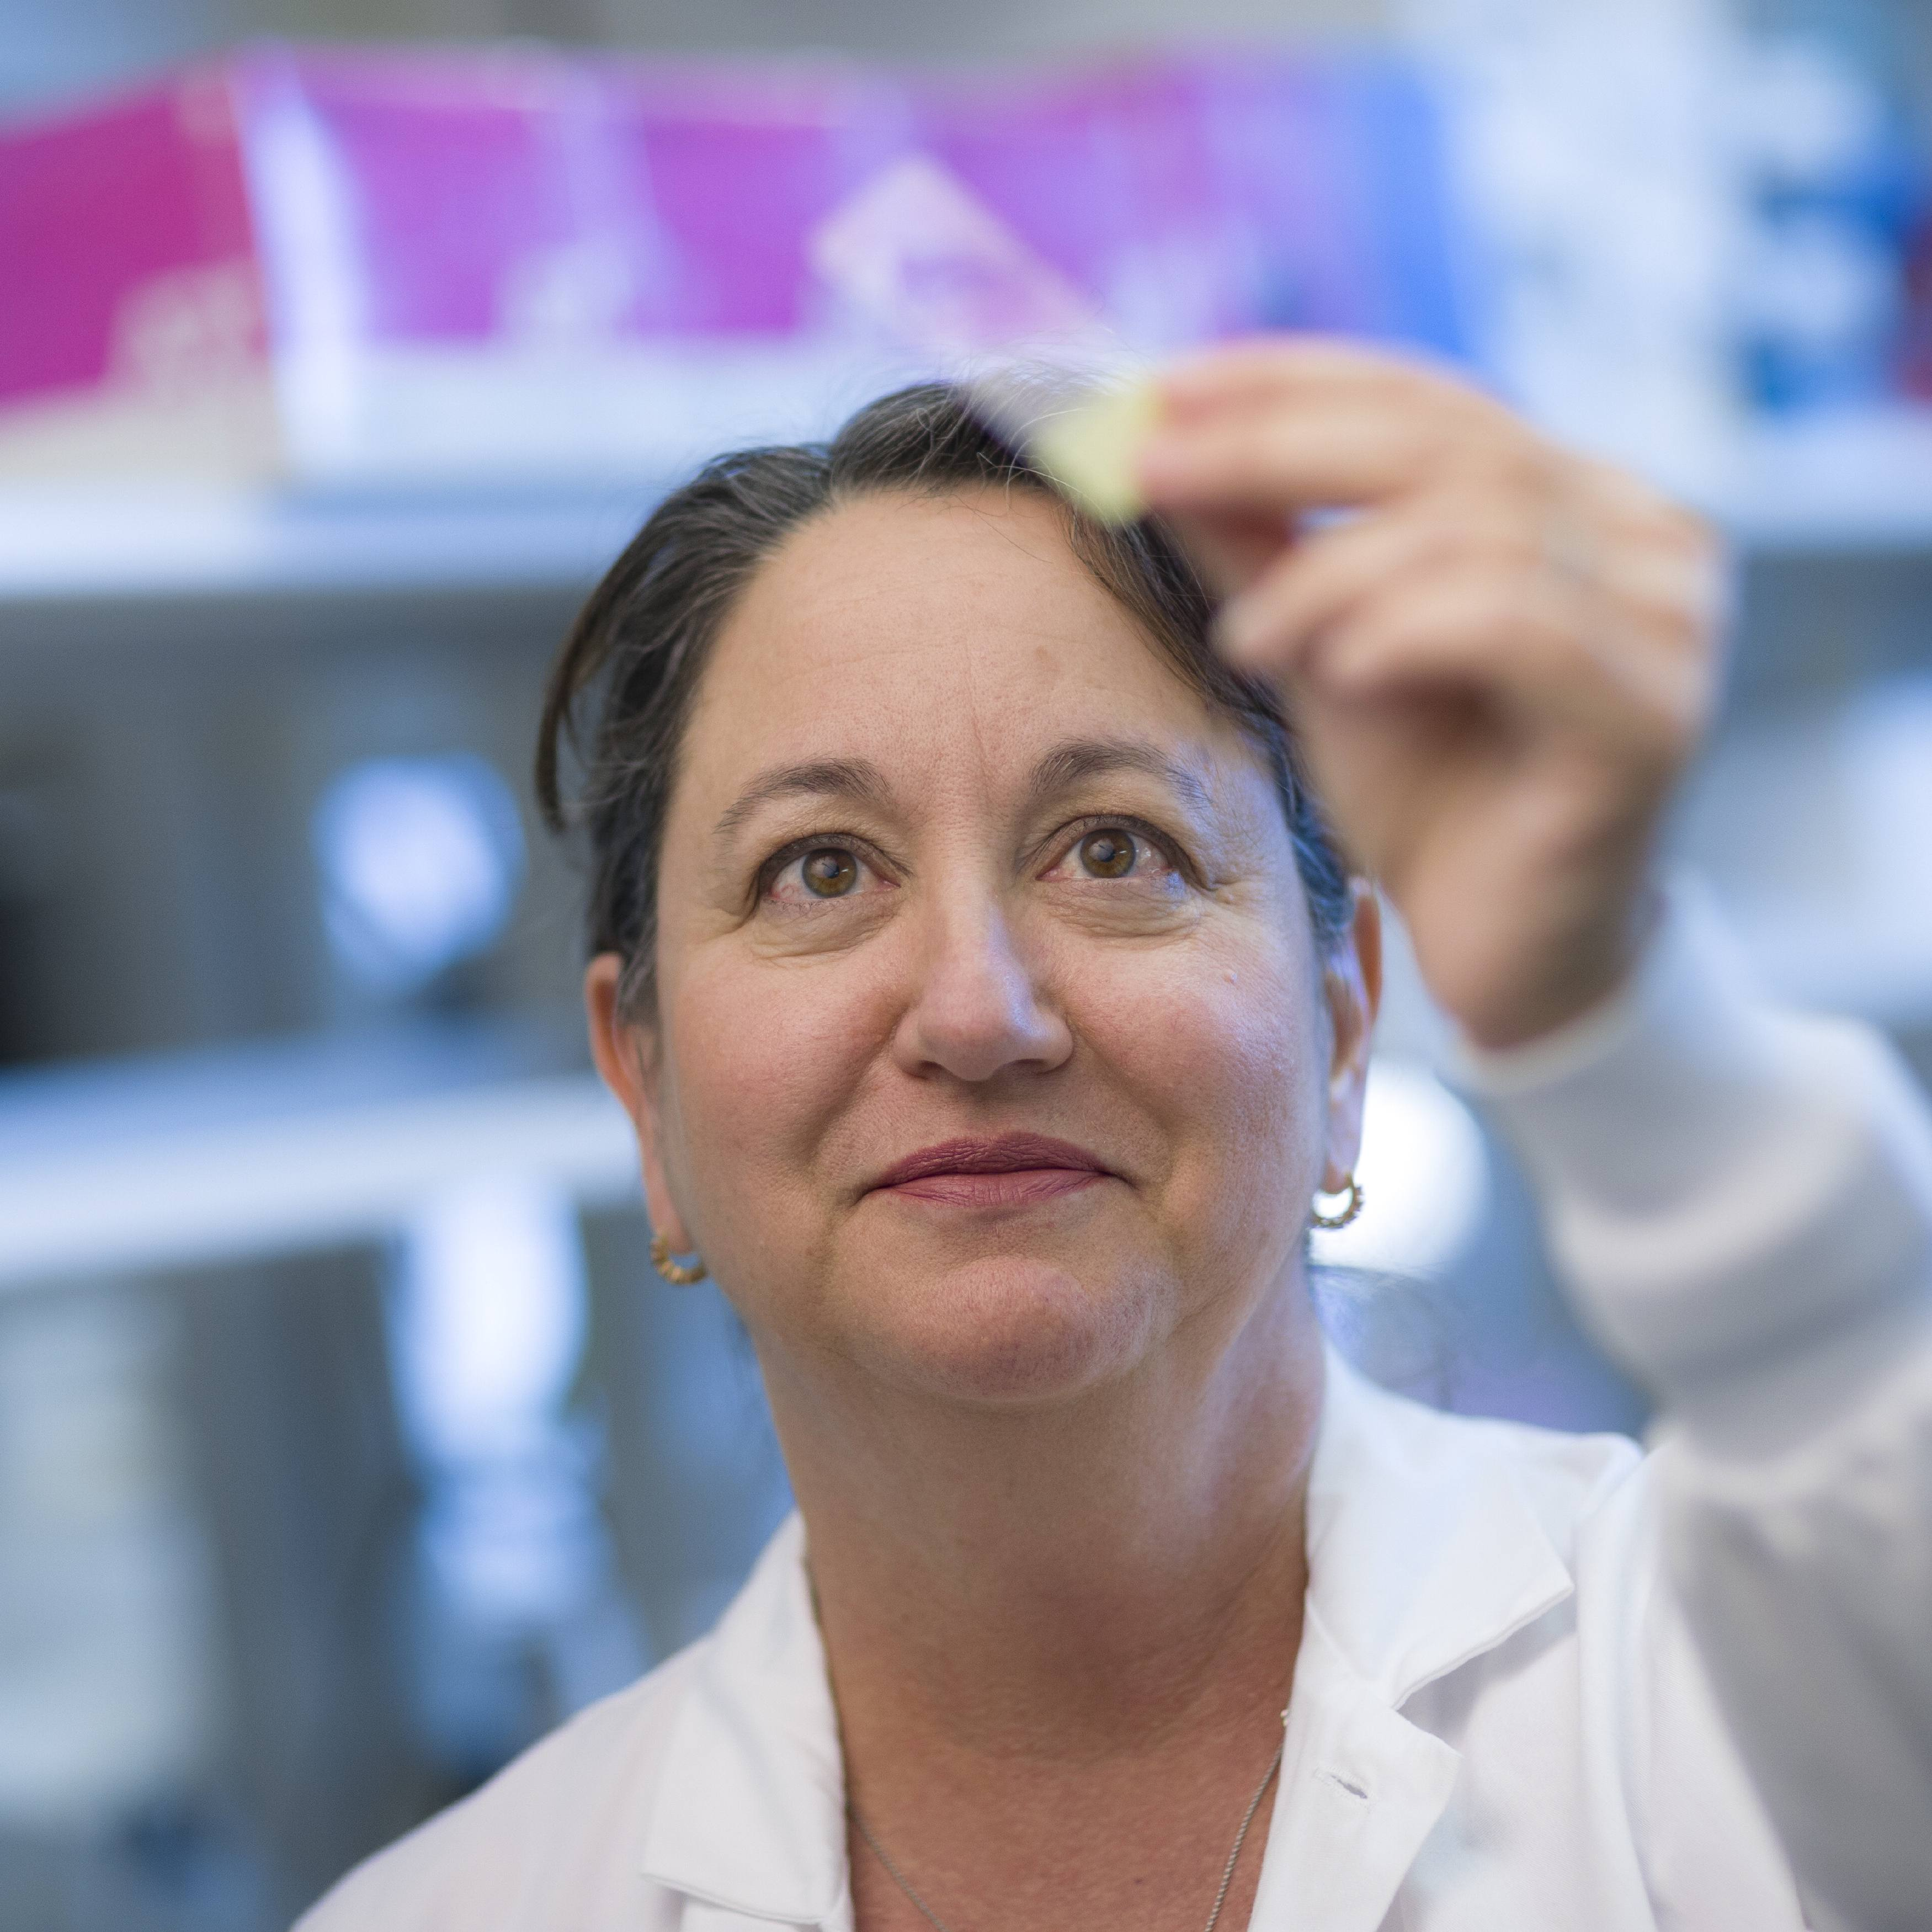 Dr. Lisa Rimsza, a pathologist and director of the Mayo Clinic Molecular Diagnostics – Arizona Laboratory looking at a slide in the research laboratory